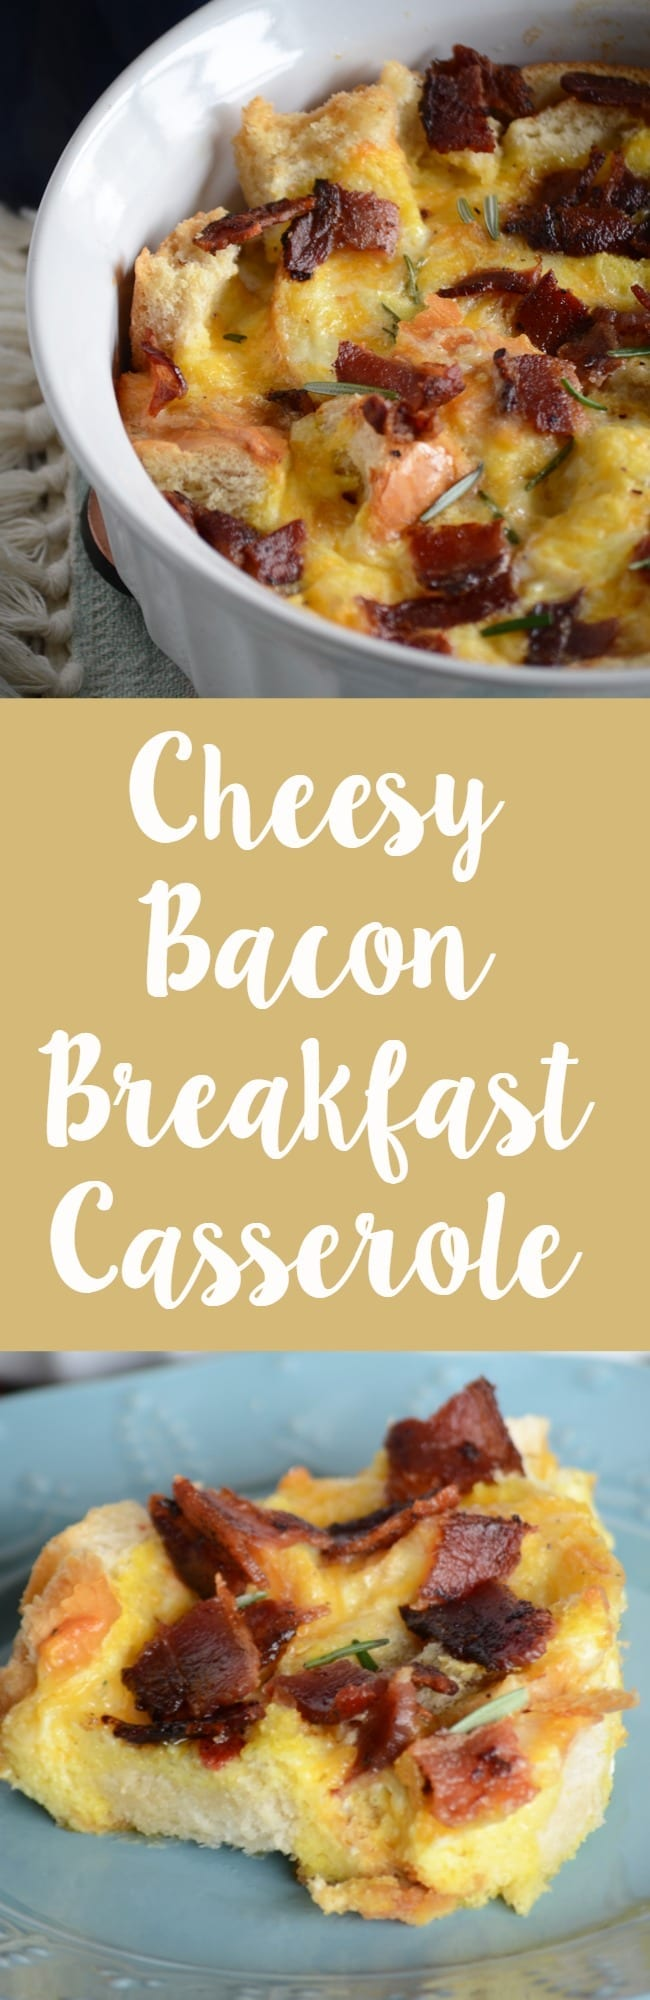 Cheesy bacon breakfast casserole recipe